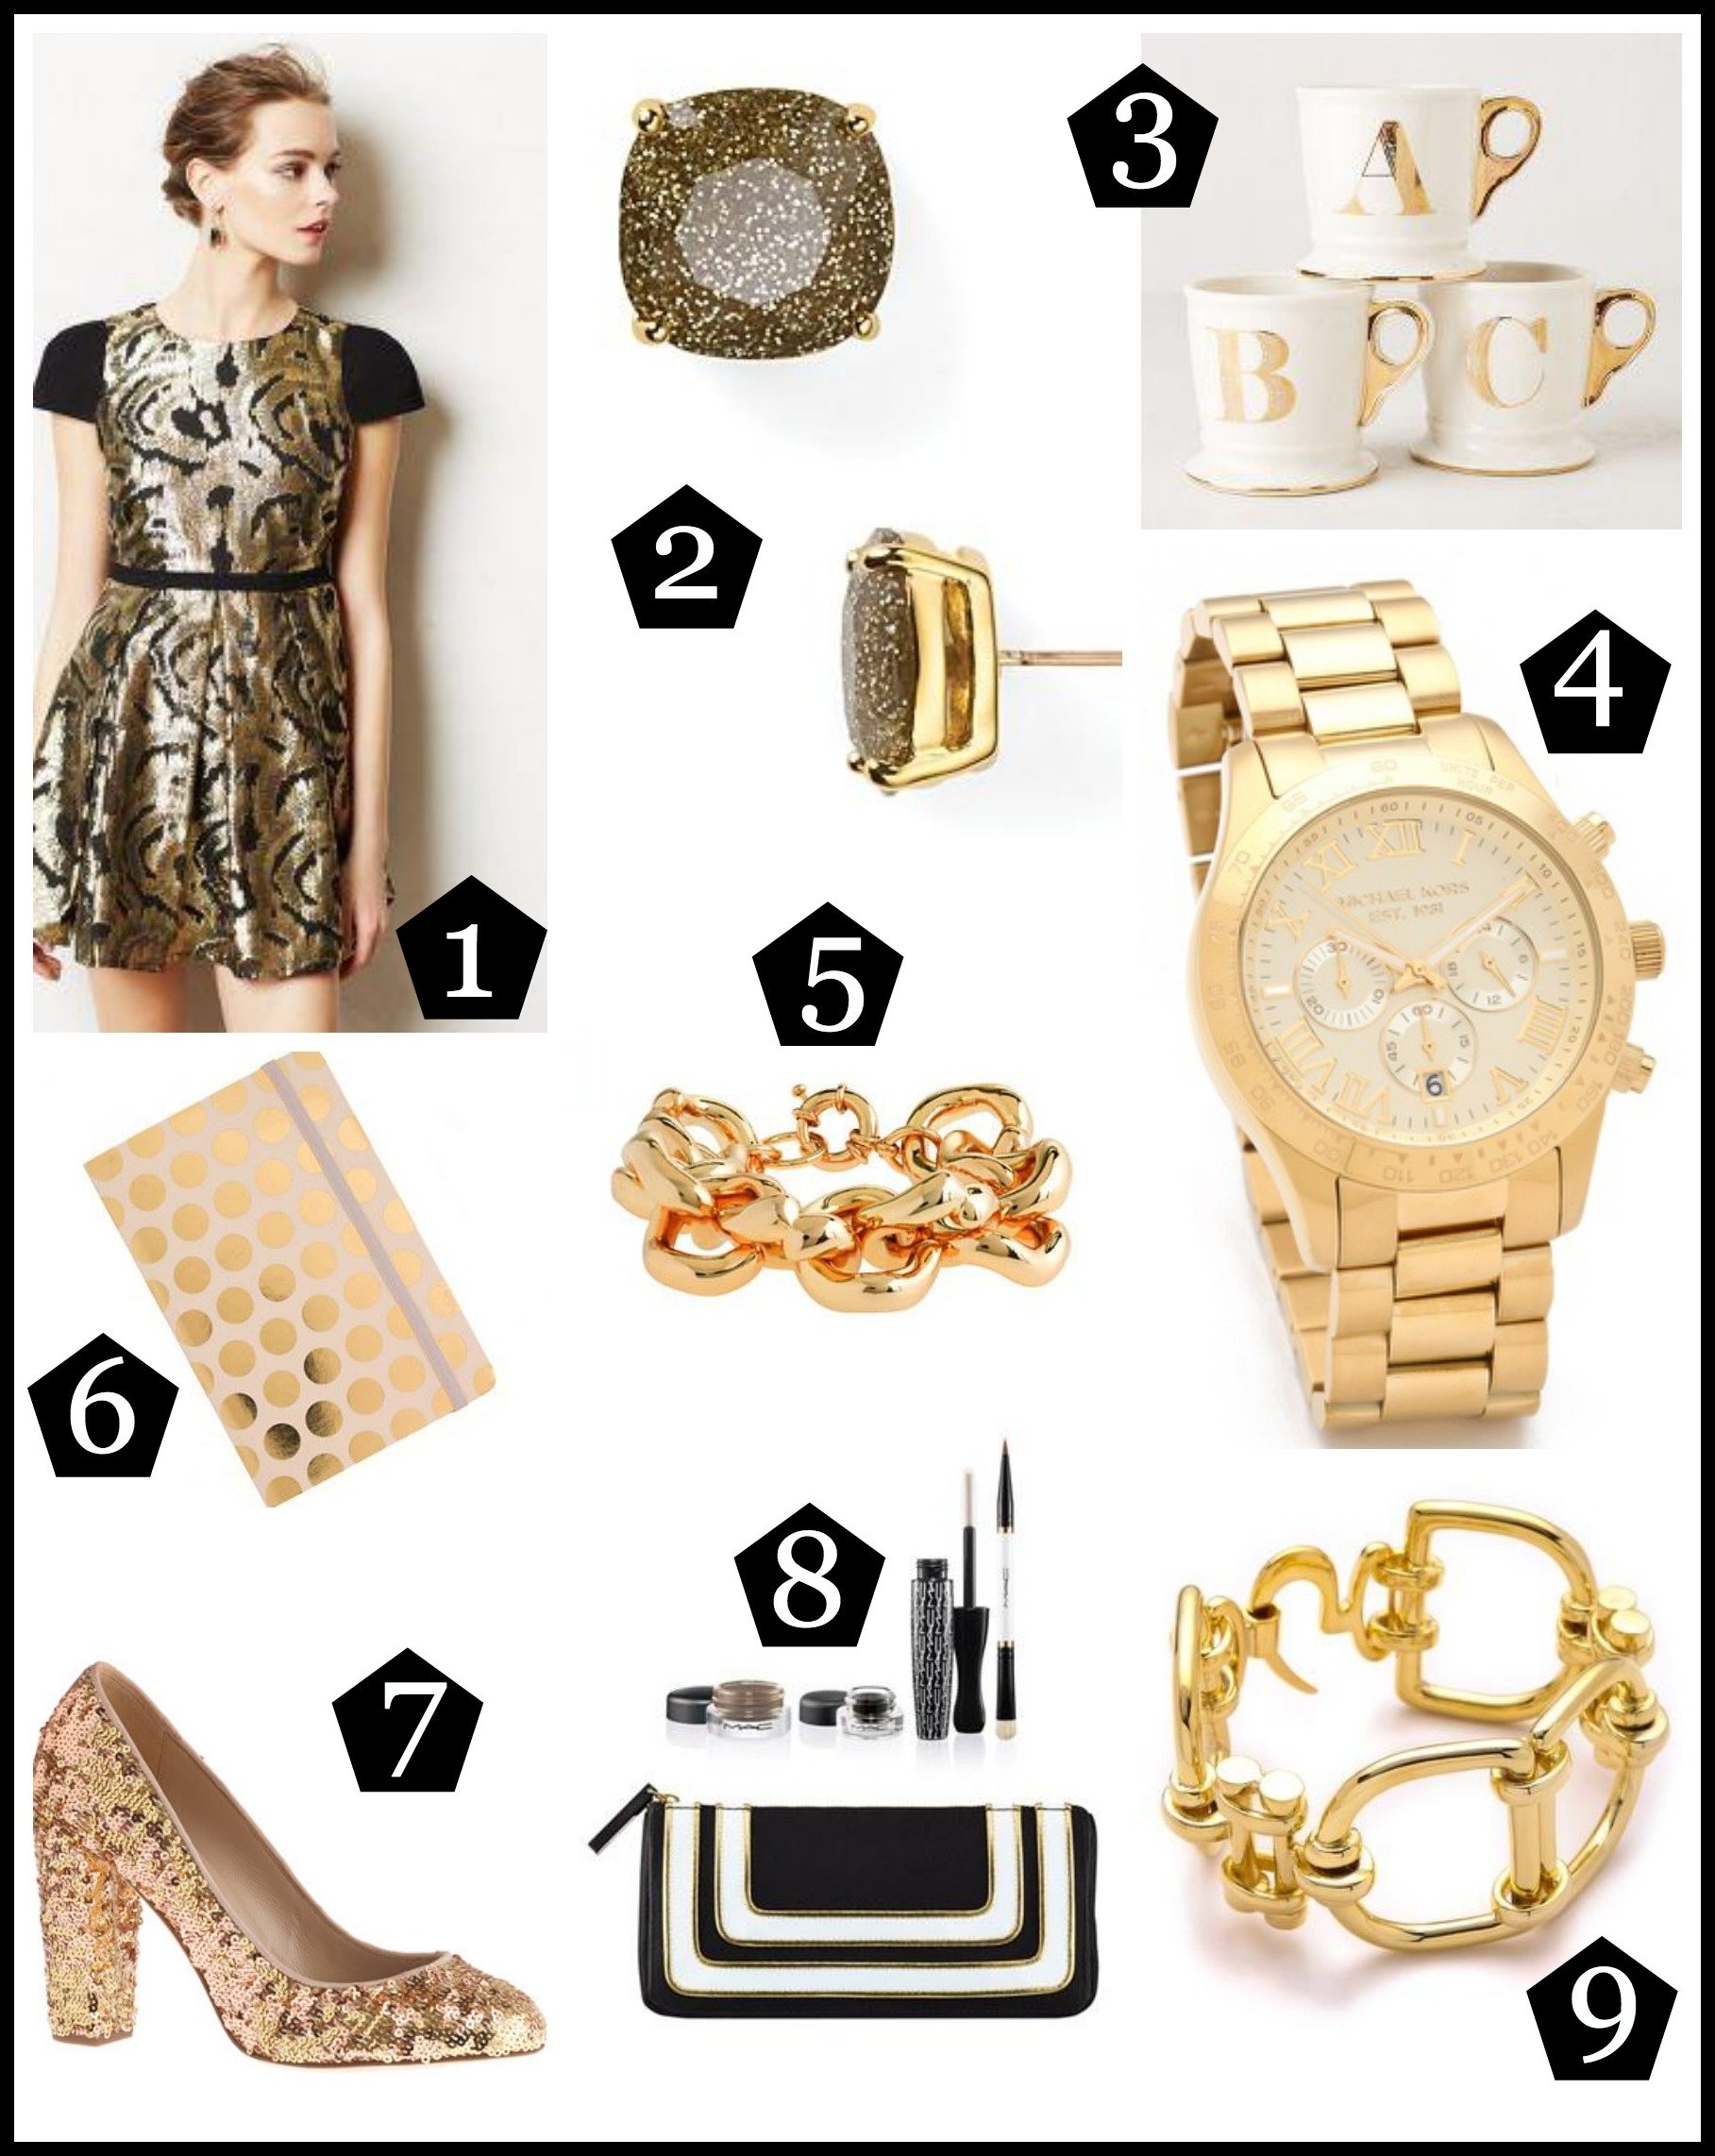 10 Great 2013 Gift Ideas For Women the jcr girls holiday gift guide gold edition the jcr girls 2020